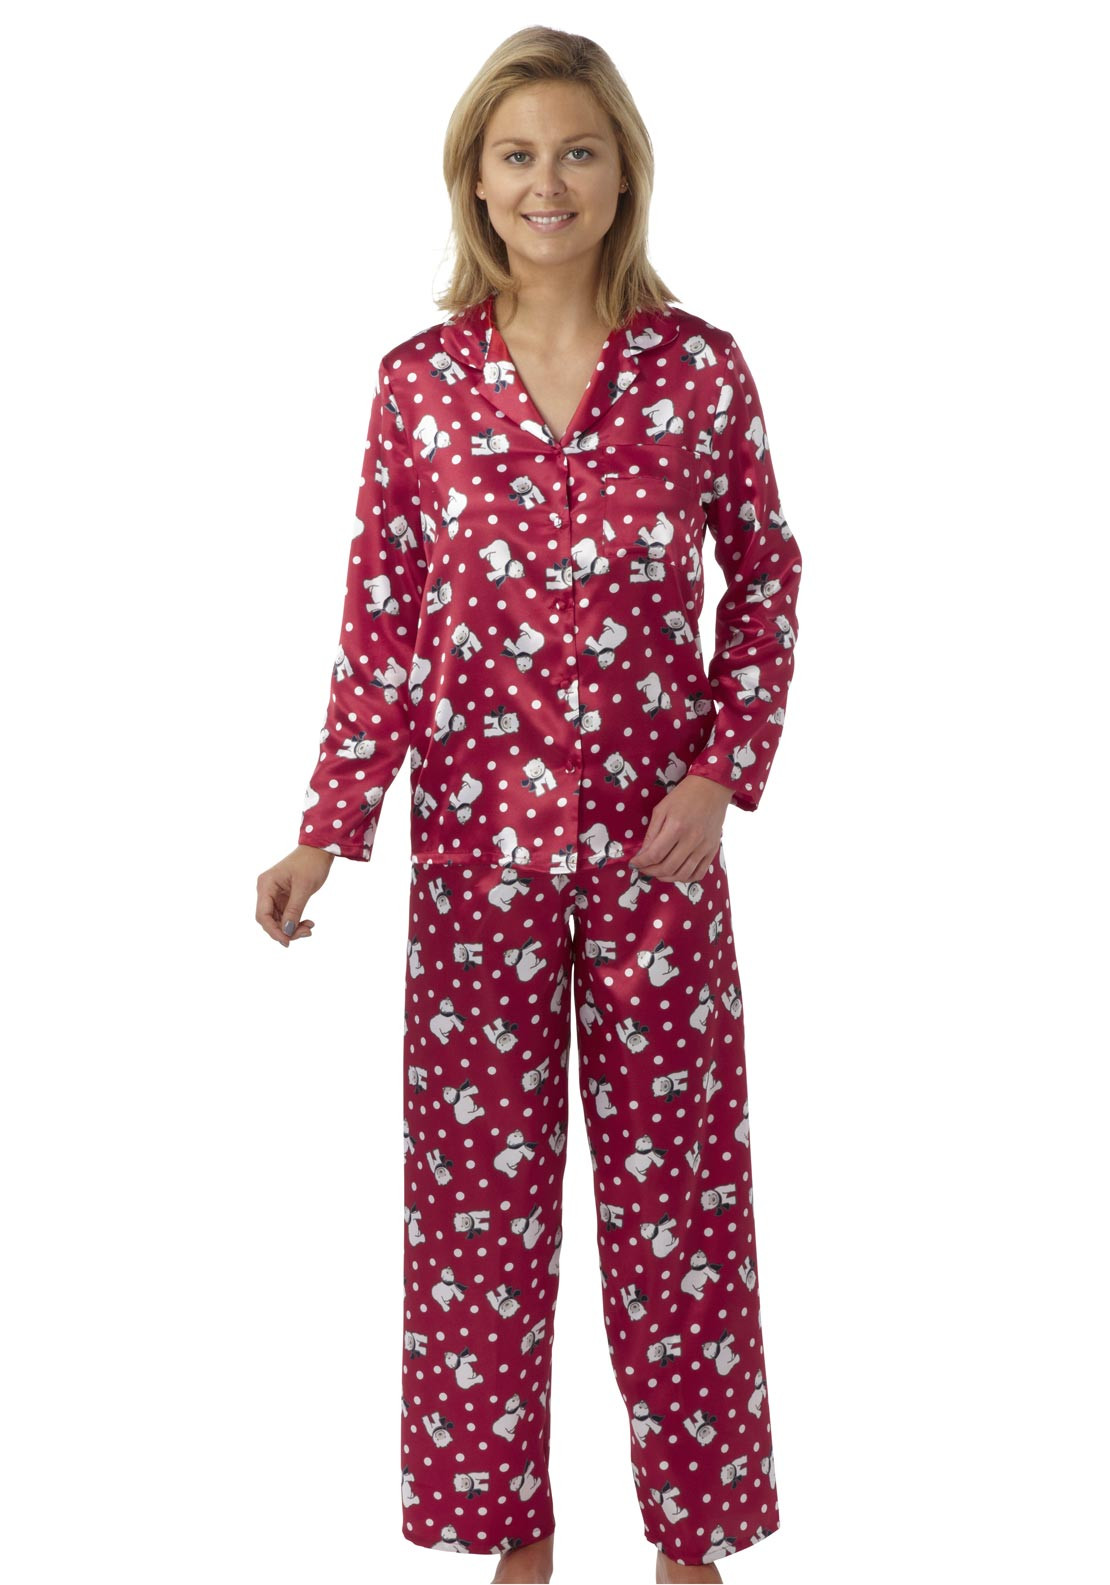 Indigo Sky Polar Bear Satin Pyjamas, Red